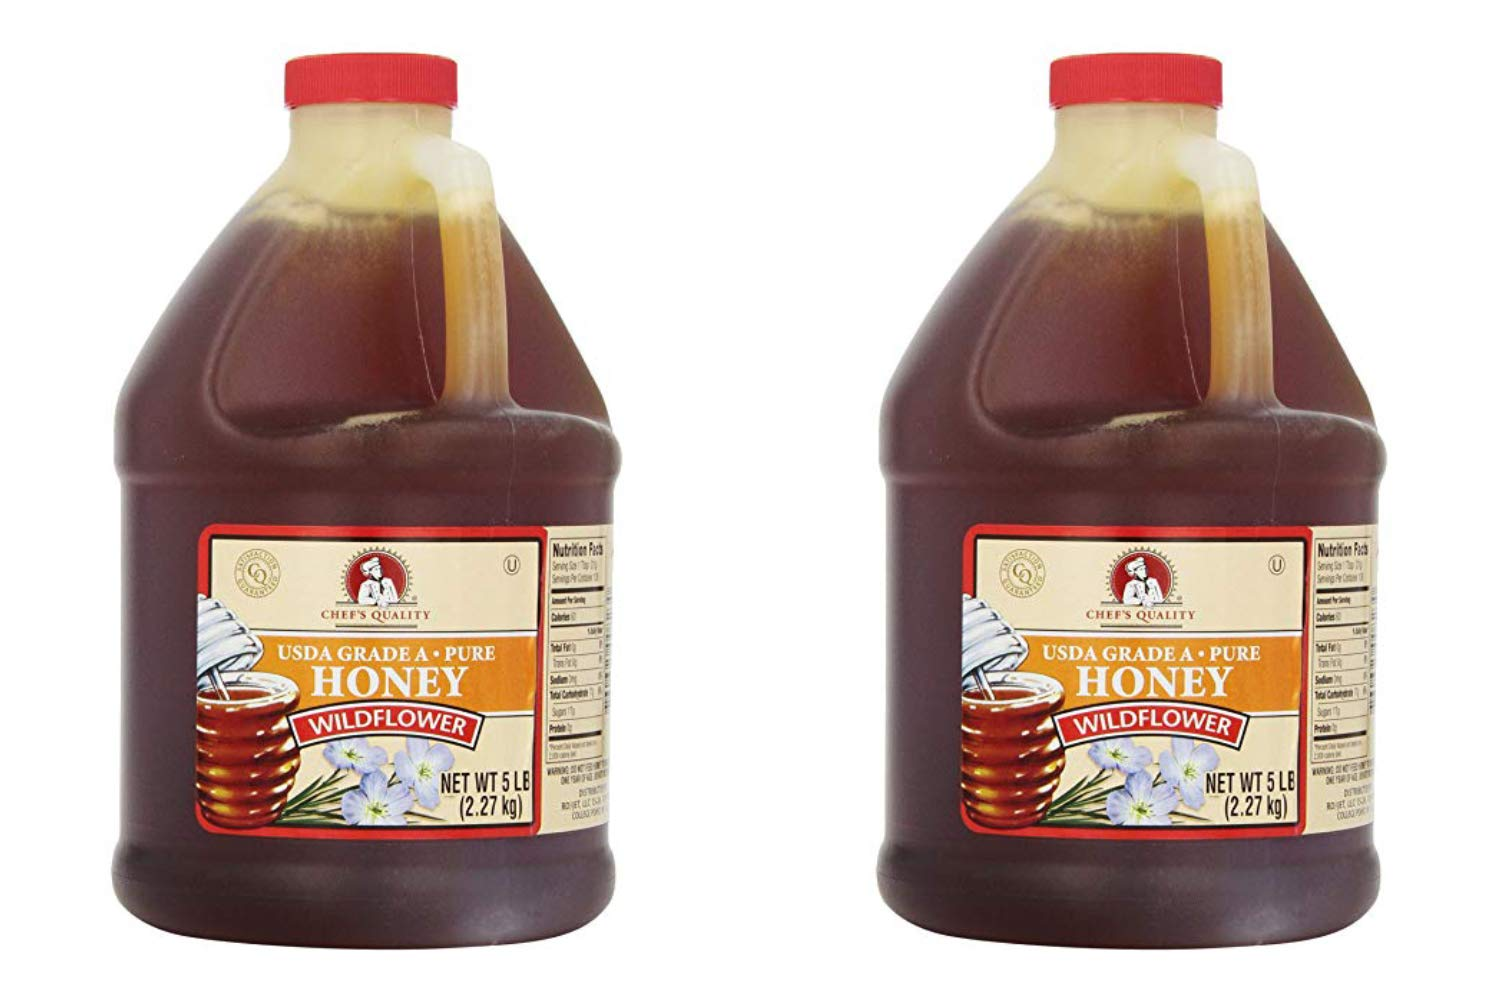 Chef's Quality: Wildflower Honey 80 Ounces (2 Pack)